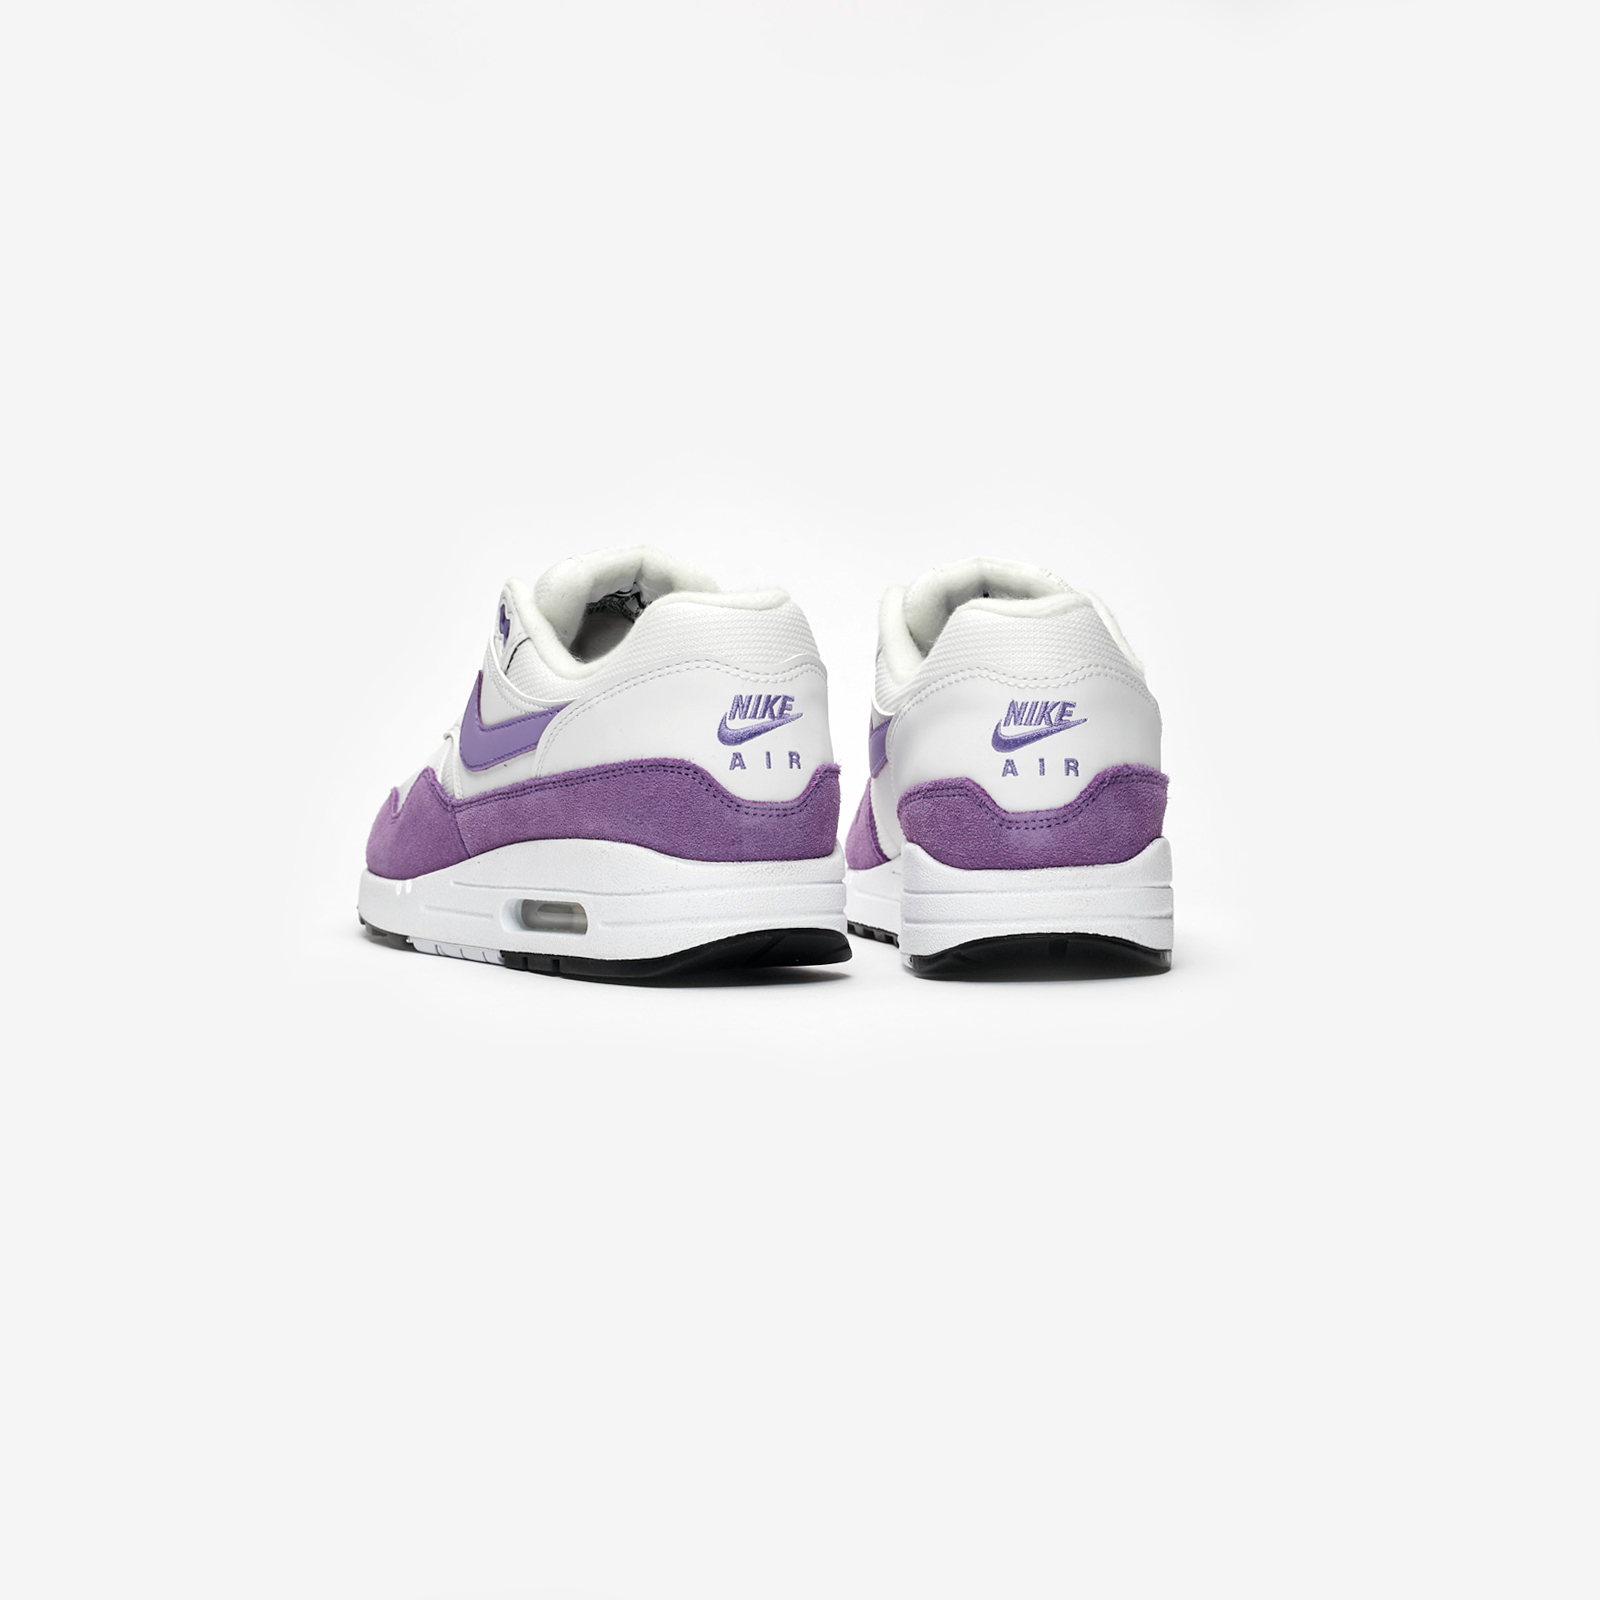 new products 41ec7 50432 Nike Wmns Air Max 1 - 319986-118 - Sneakersnstuff   sneakers   streetwear  online since 1999